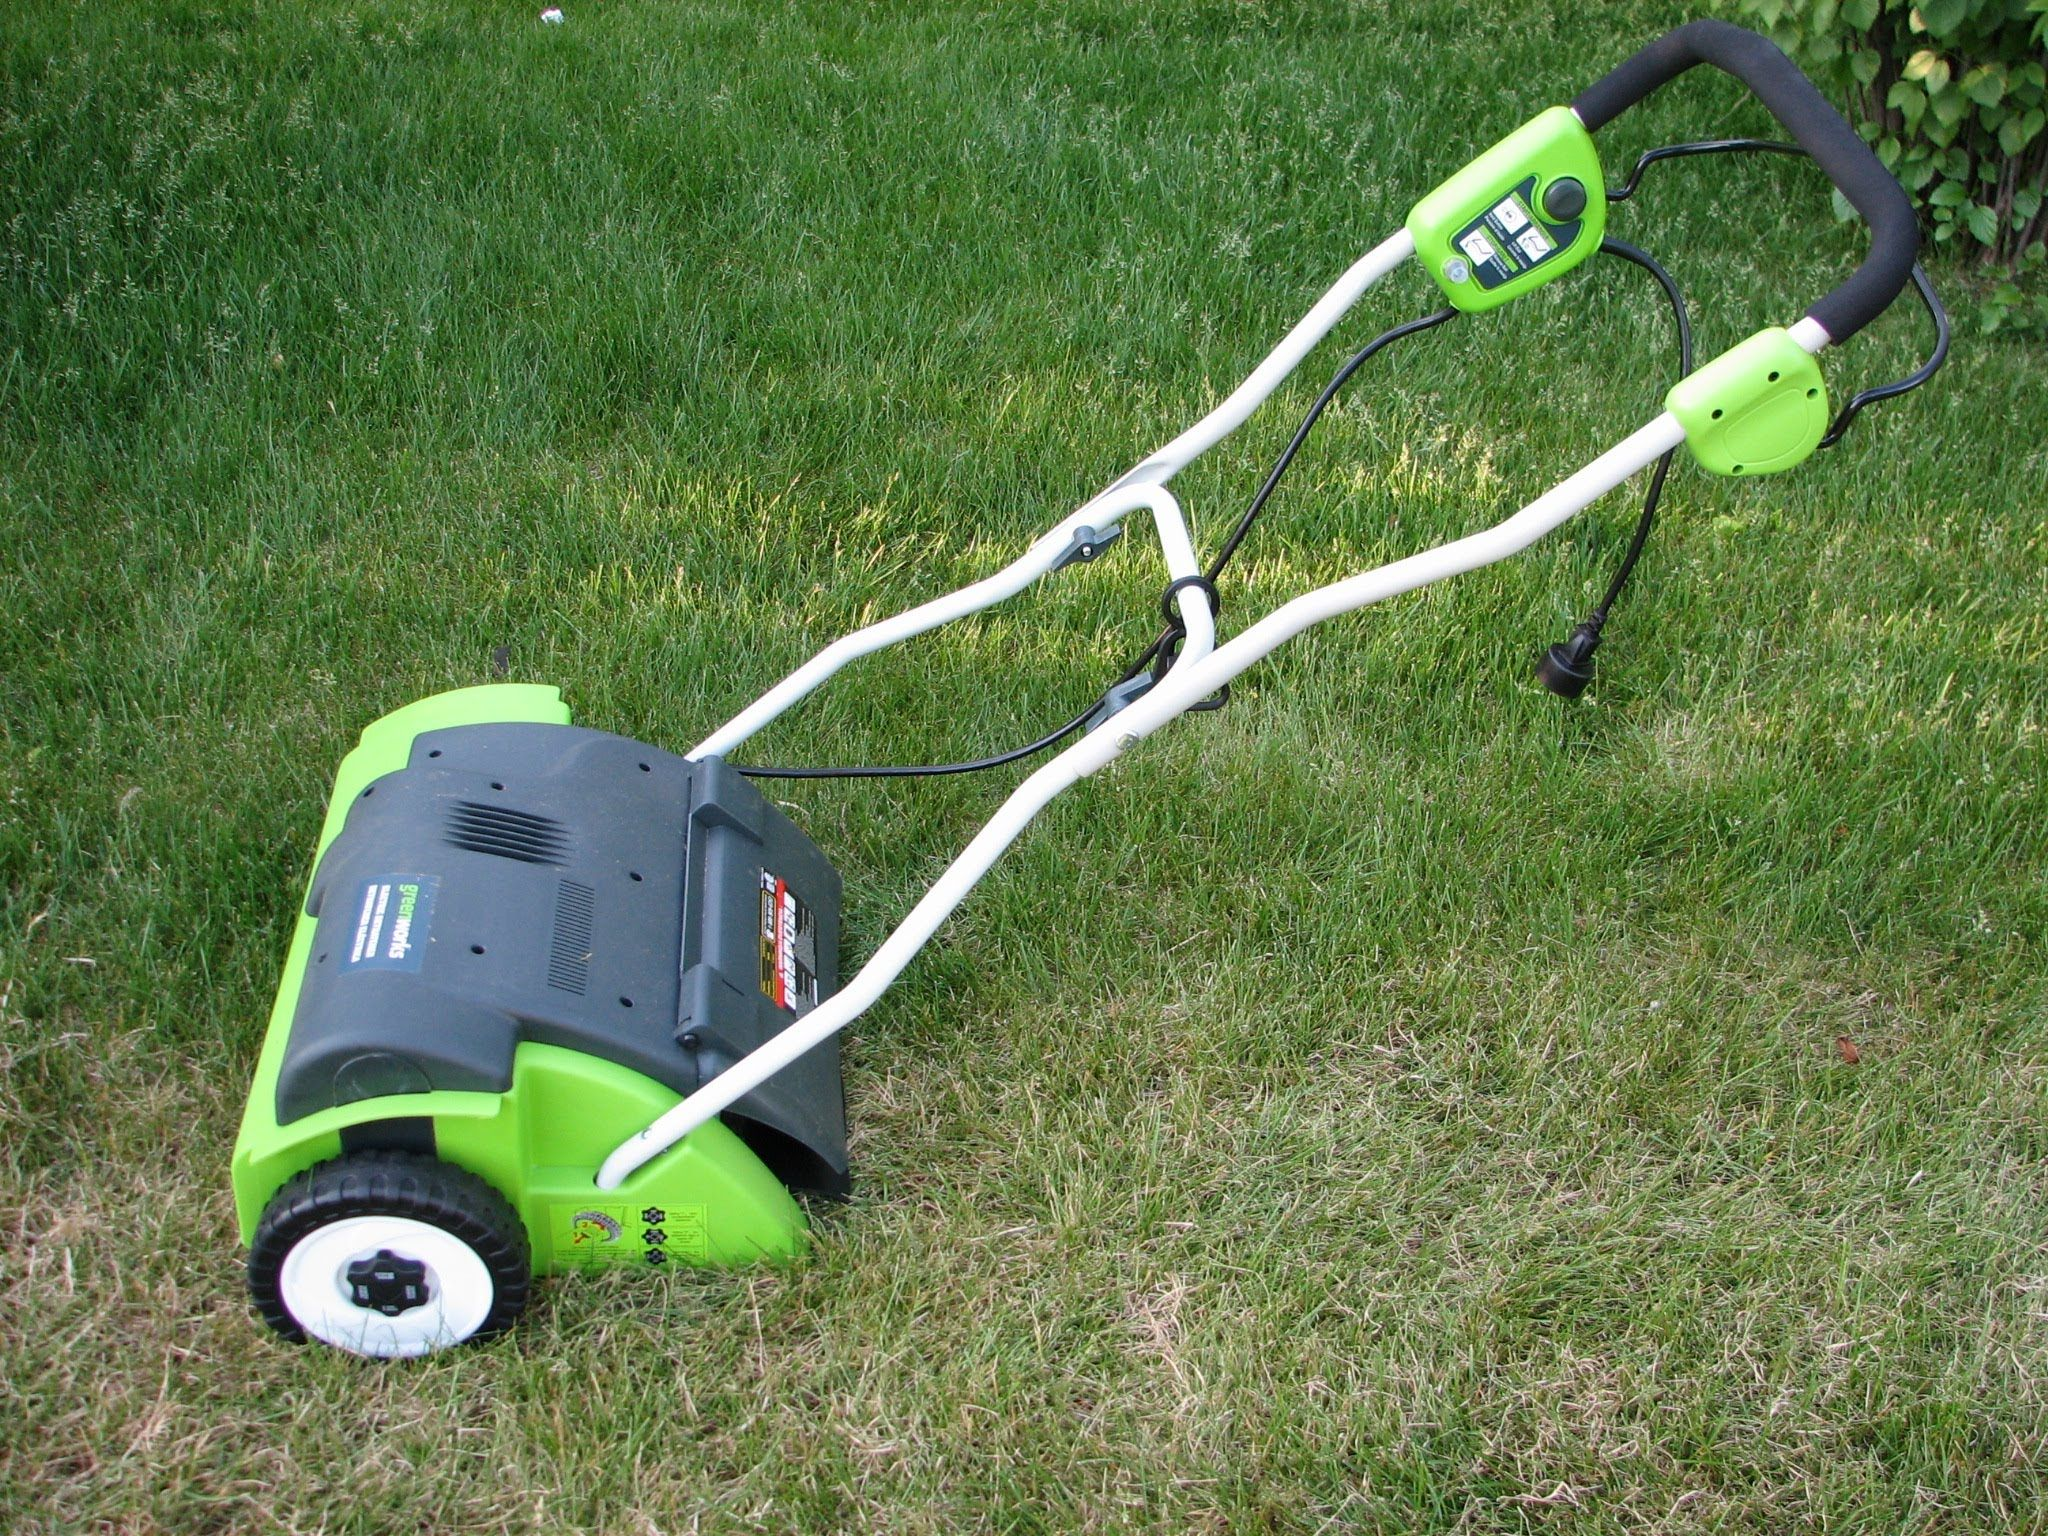 Greenworks Electric Lawn Dethatcher Review Dethatching Lawn Unboxing And Putting Together The Greenworks 14 Electric Dethatching Lawn Diy Lawn Lawn Mower